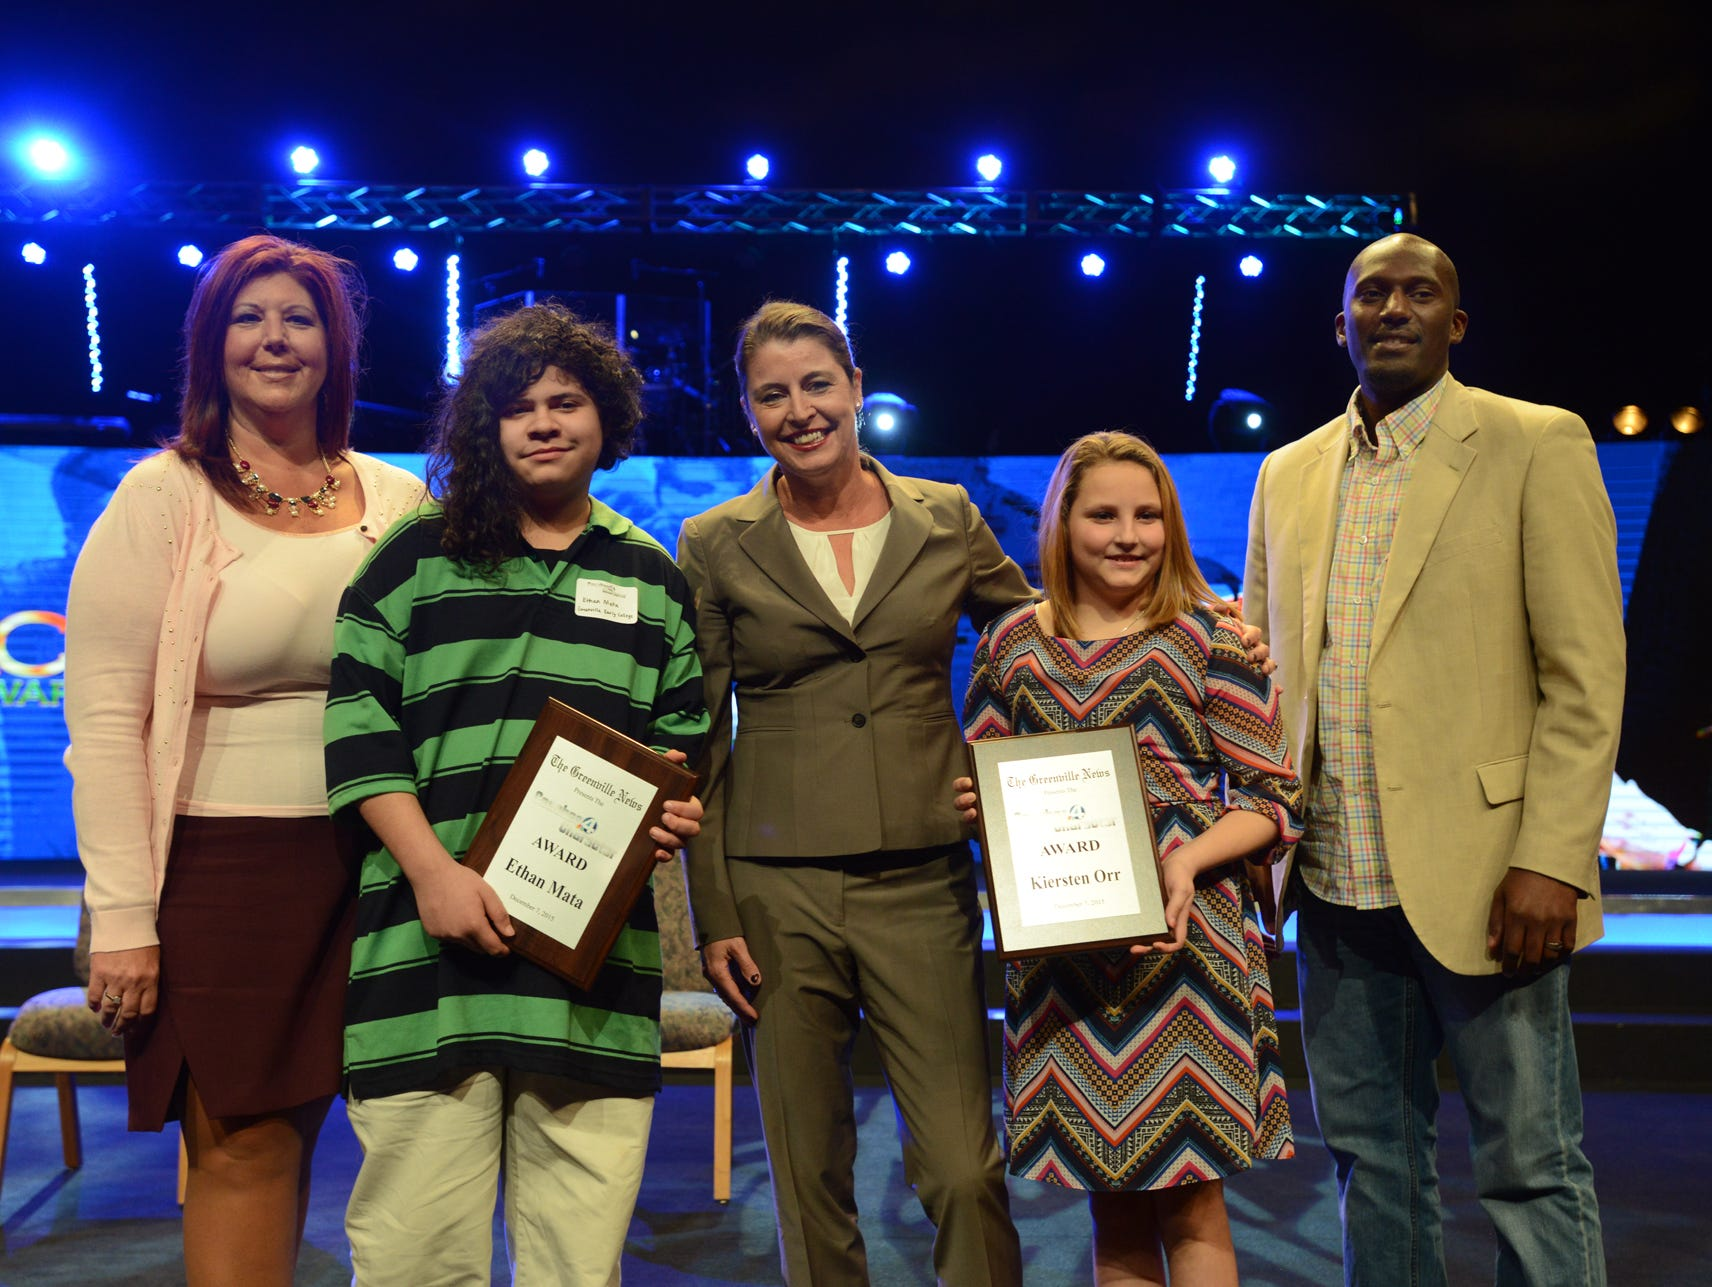 Ethan Mata and Kiersten Orr of Greenville Early College receive The Greenville News Coaches 4 Character Award on Monday as they stand with their principal Dr. Tiffany Estes, left, Coach Joanne P. McCallie of Duke University, center, and Manie Robinson of The Greenville News, right.